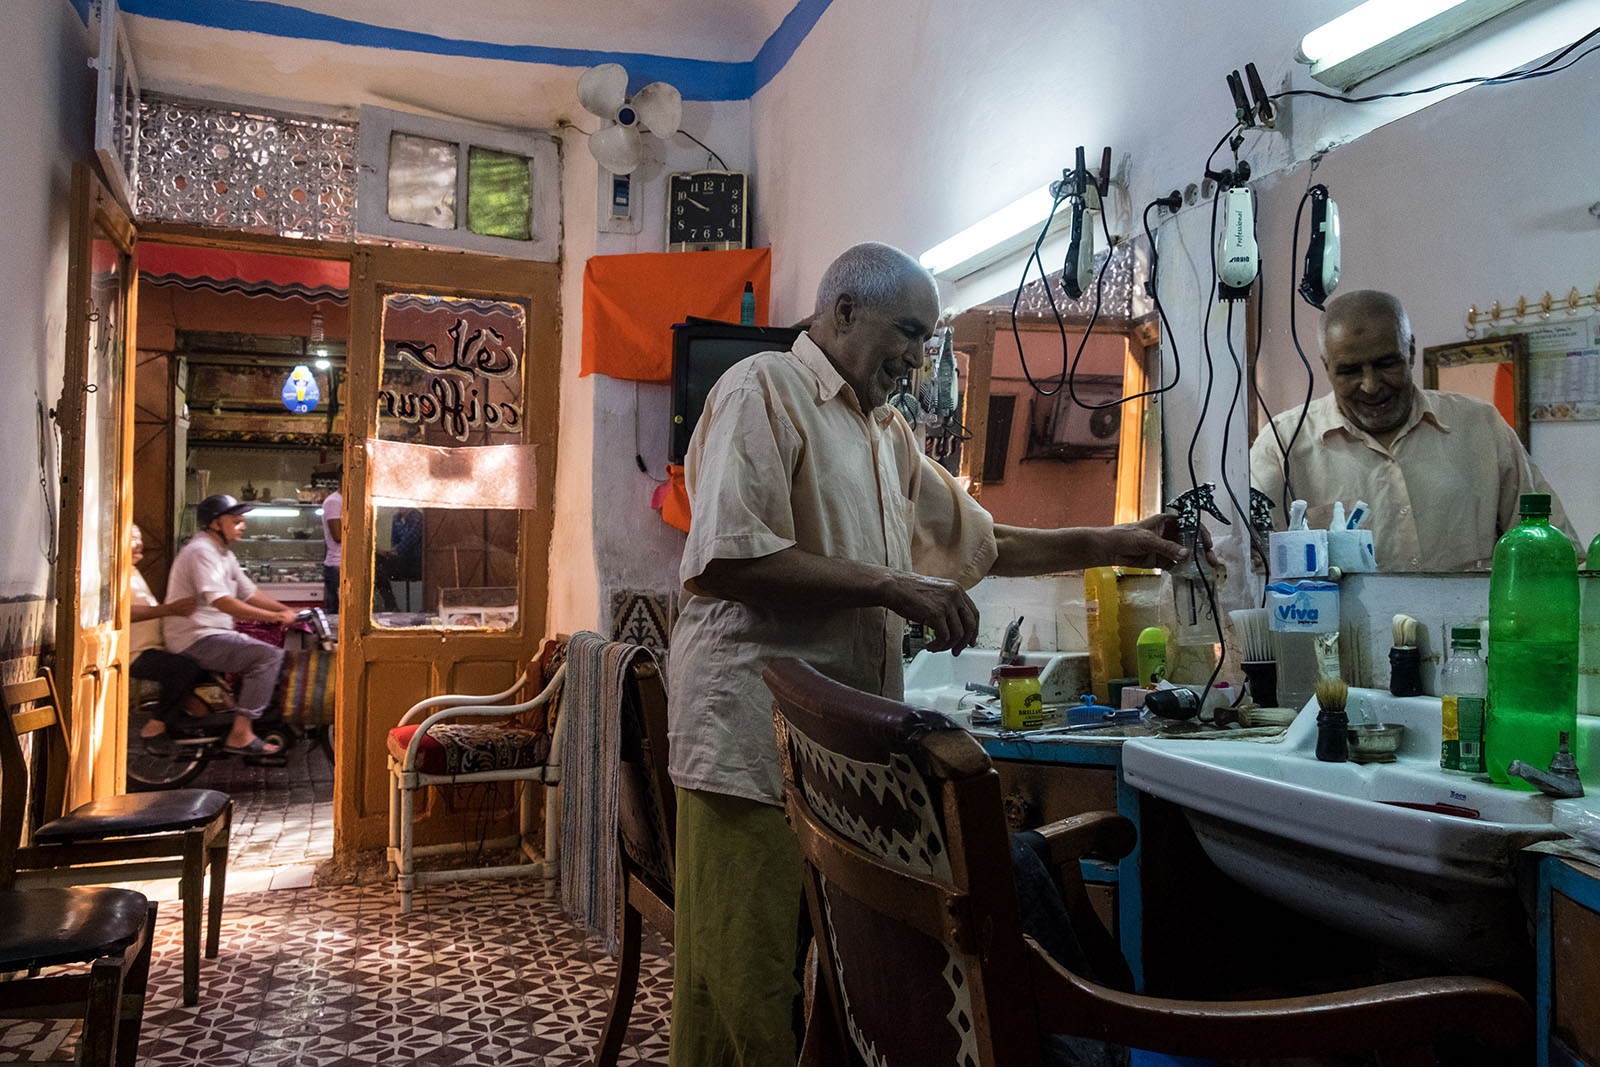 Barber Shop in Marakech, Morocco